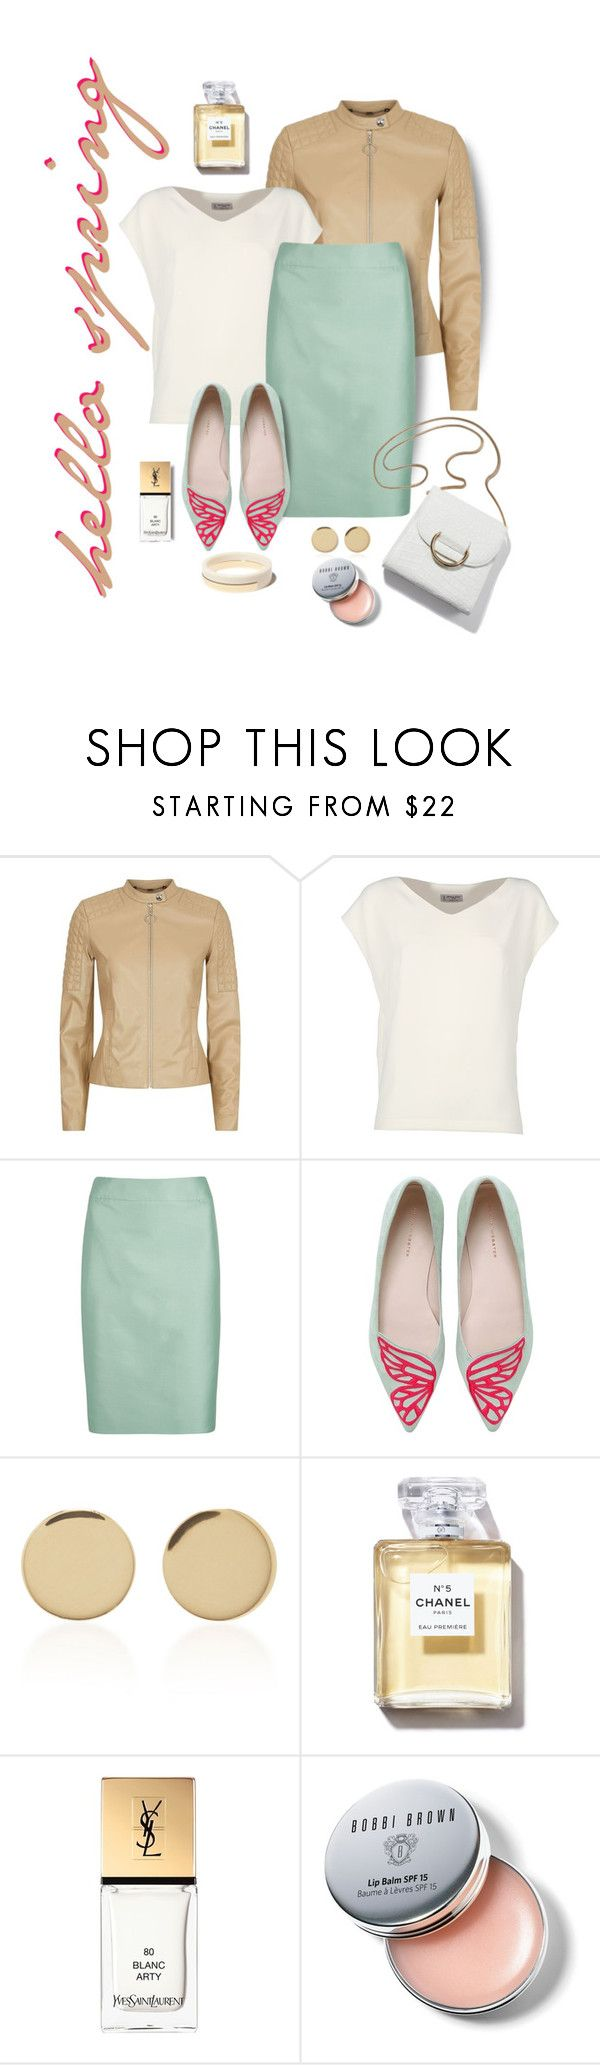 """""""Look of the Day"""" by minnieromanovich ❤ liked on Polyvore featuring Escada Sport, Alberto Biani, Armani Collezioni, Sophia Webster, Magdalena Frackowiak, Yves Saint Laurent, Bobbi Brown Cosmetics and ootd"""